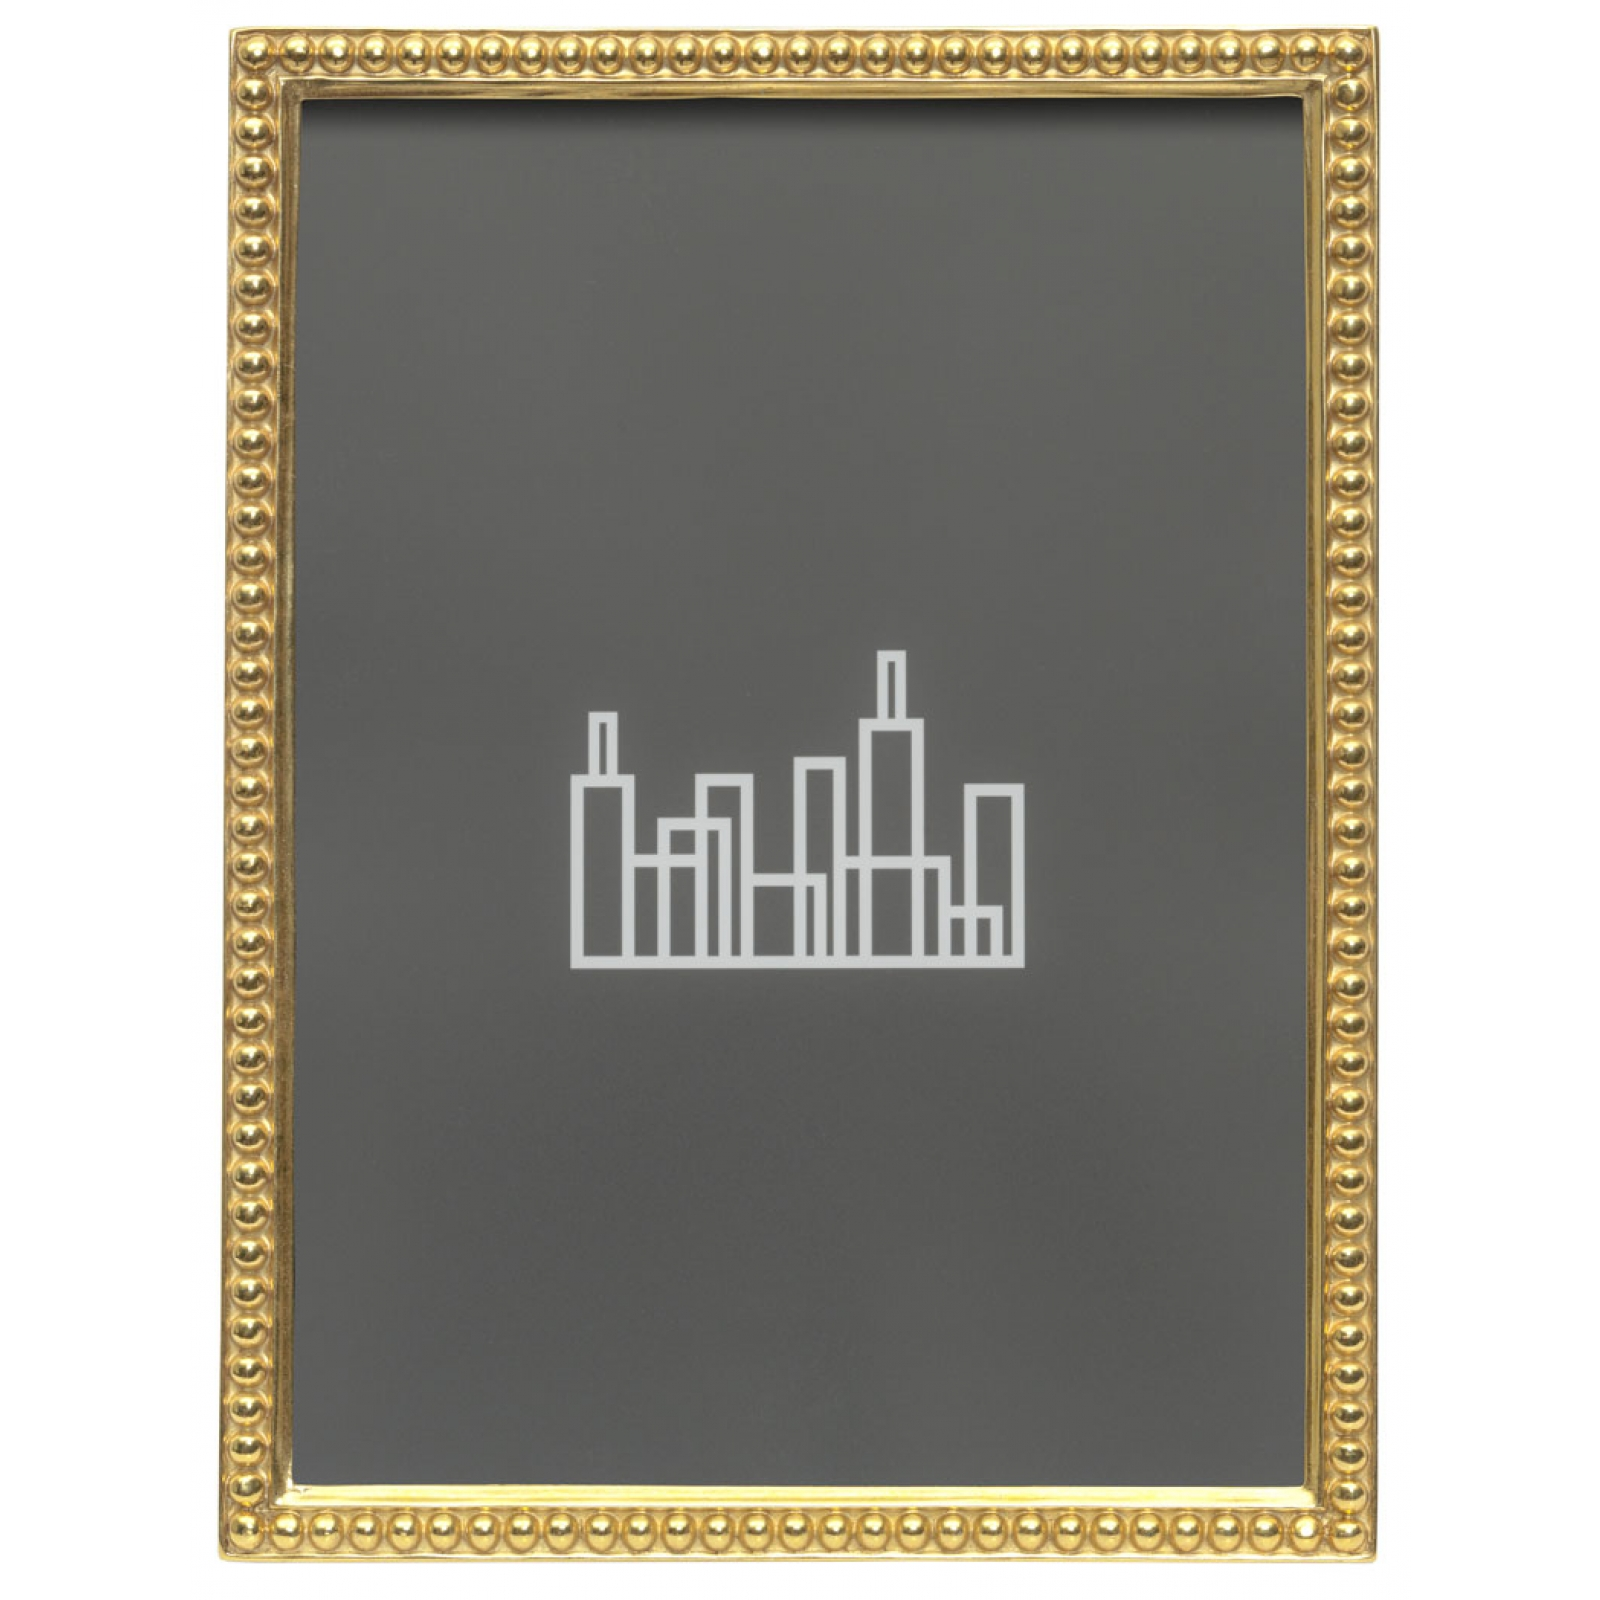 Personal wedding gifts photo frames online frameology crosby gold jeuxipadfo Image collections